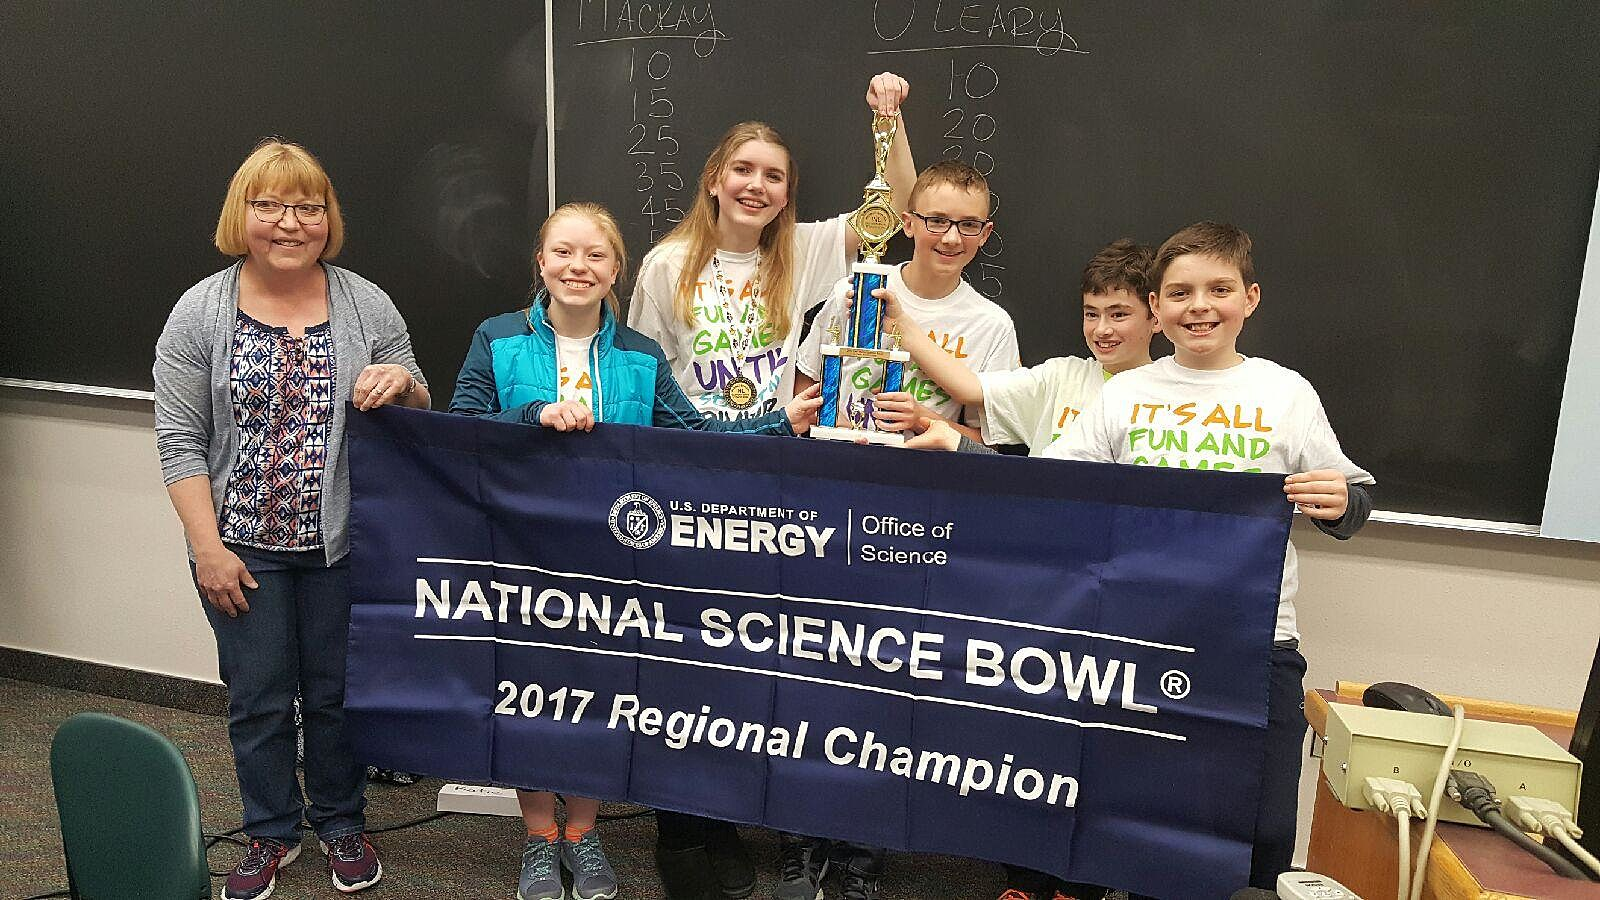 Students from O'Leary Middle School pose for a photo after learning that they'll be heading to Washington, DC. in April for the National Science Bowl. (Photo courtesy of the Twin Falls School District)